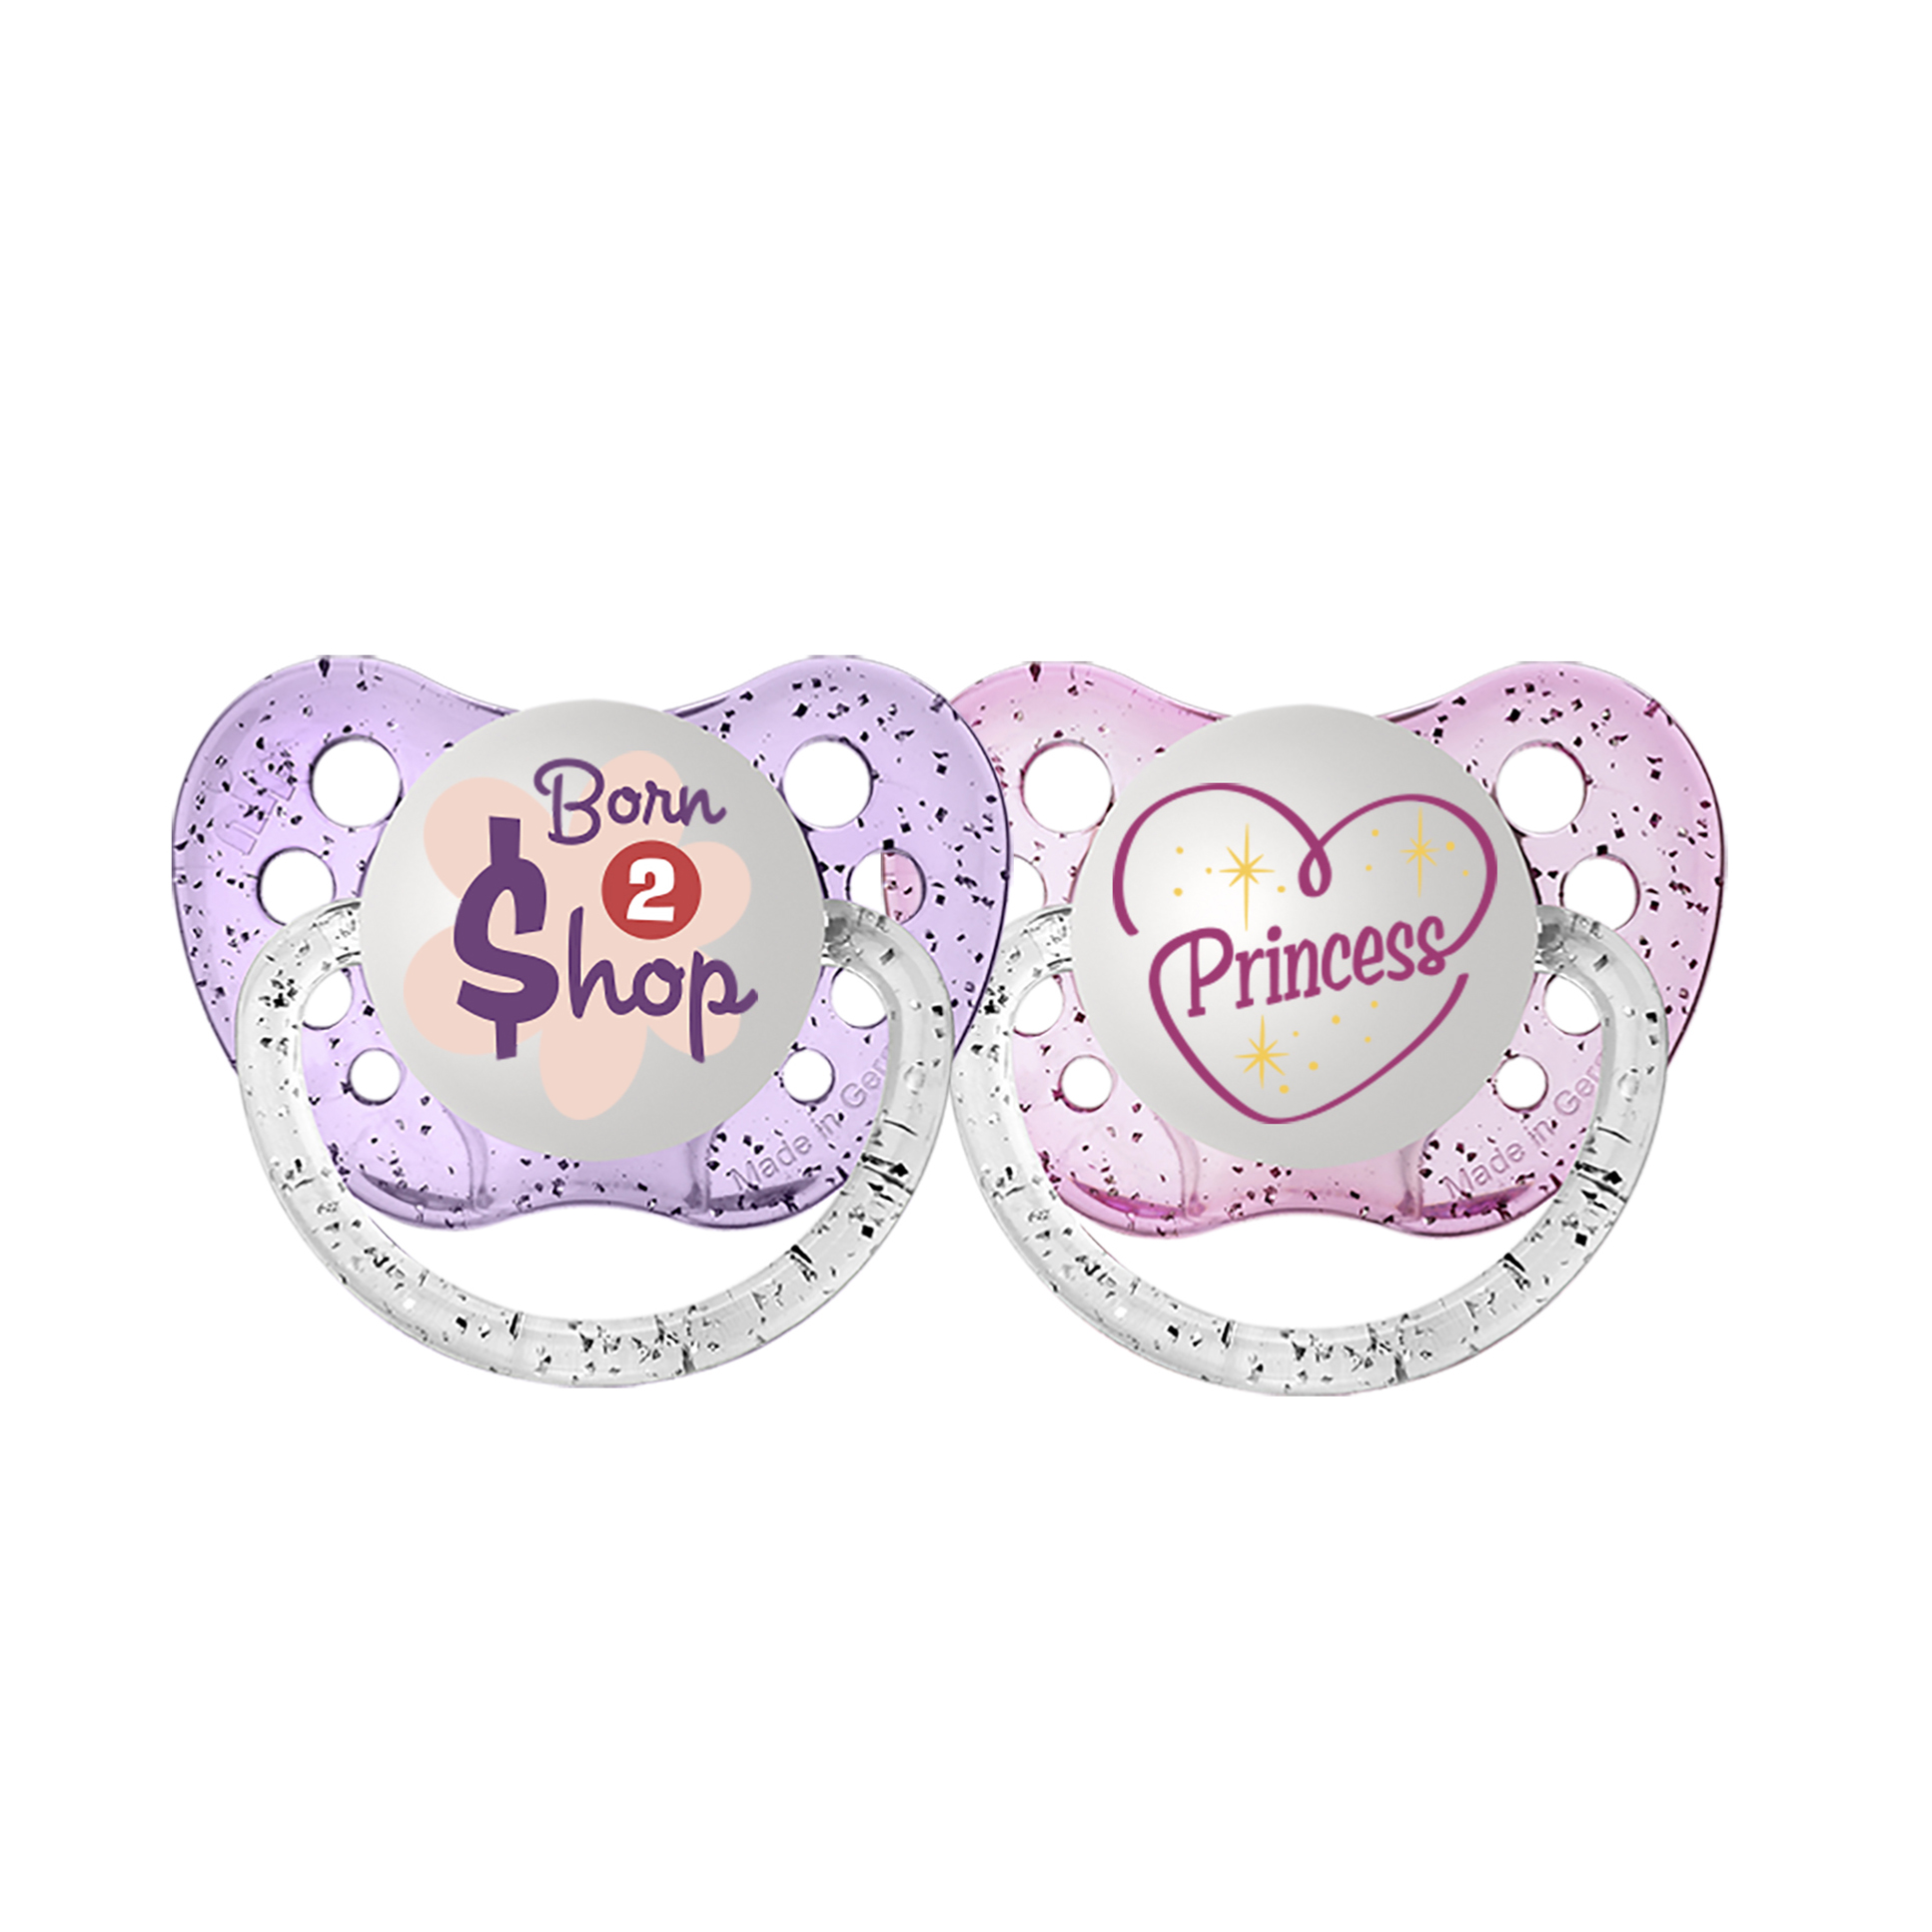 Ulubulu Princess/Born To Shop Pacifiers, 0-6 Months, 2-Pack